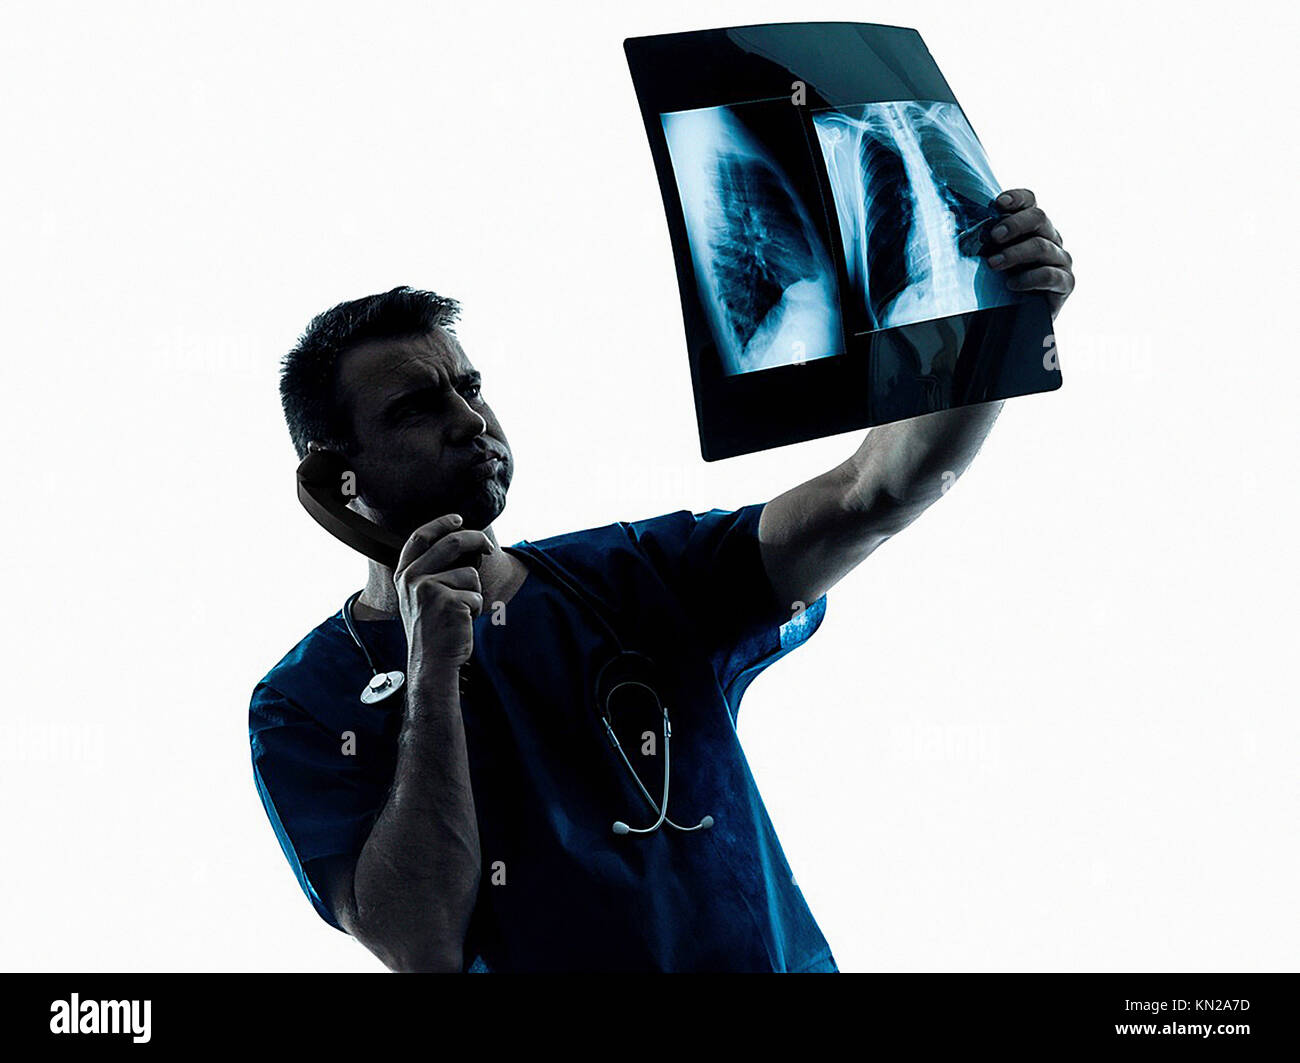 one caucasian man doctor surgeon radiologist medical examaning lung torso x-ray image silhouette isolated on white - Stock Image